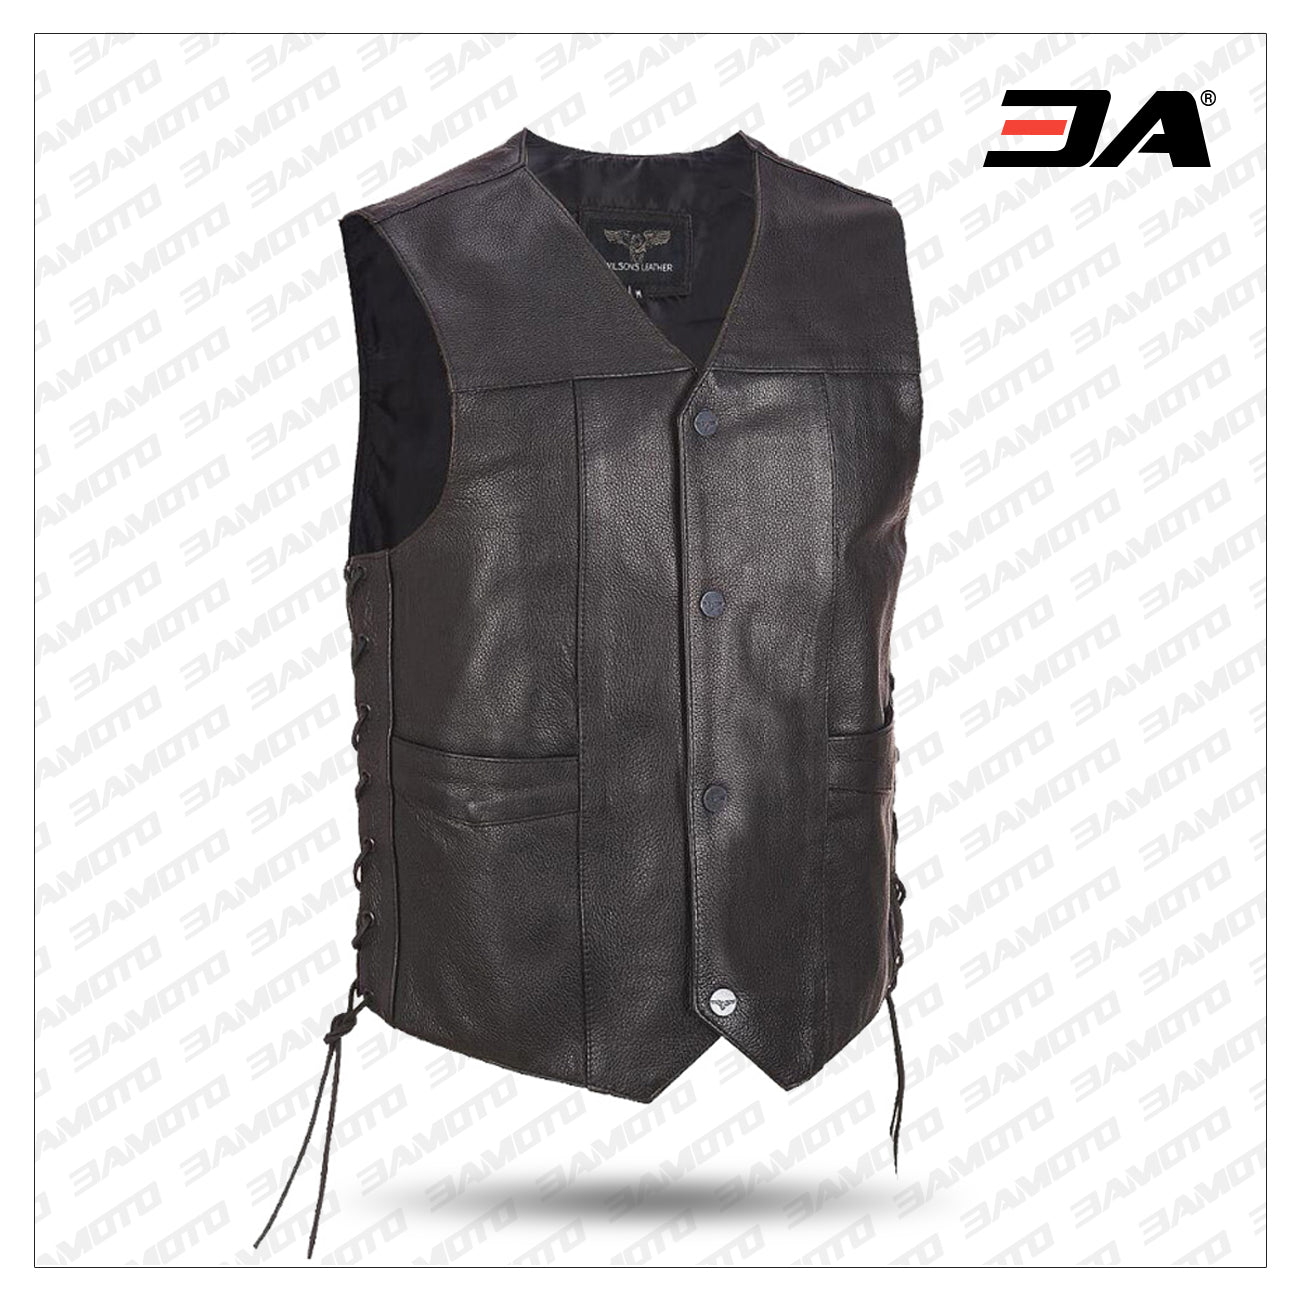 Black Leather Motorcycle Vest 16 Patches Conceal Carry Harley Rider Biker